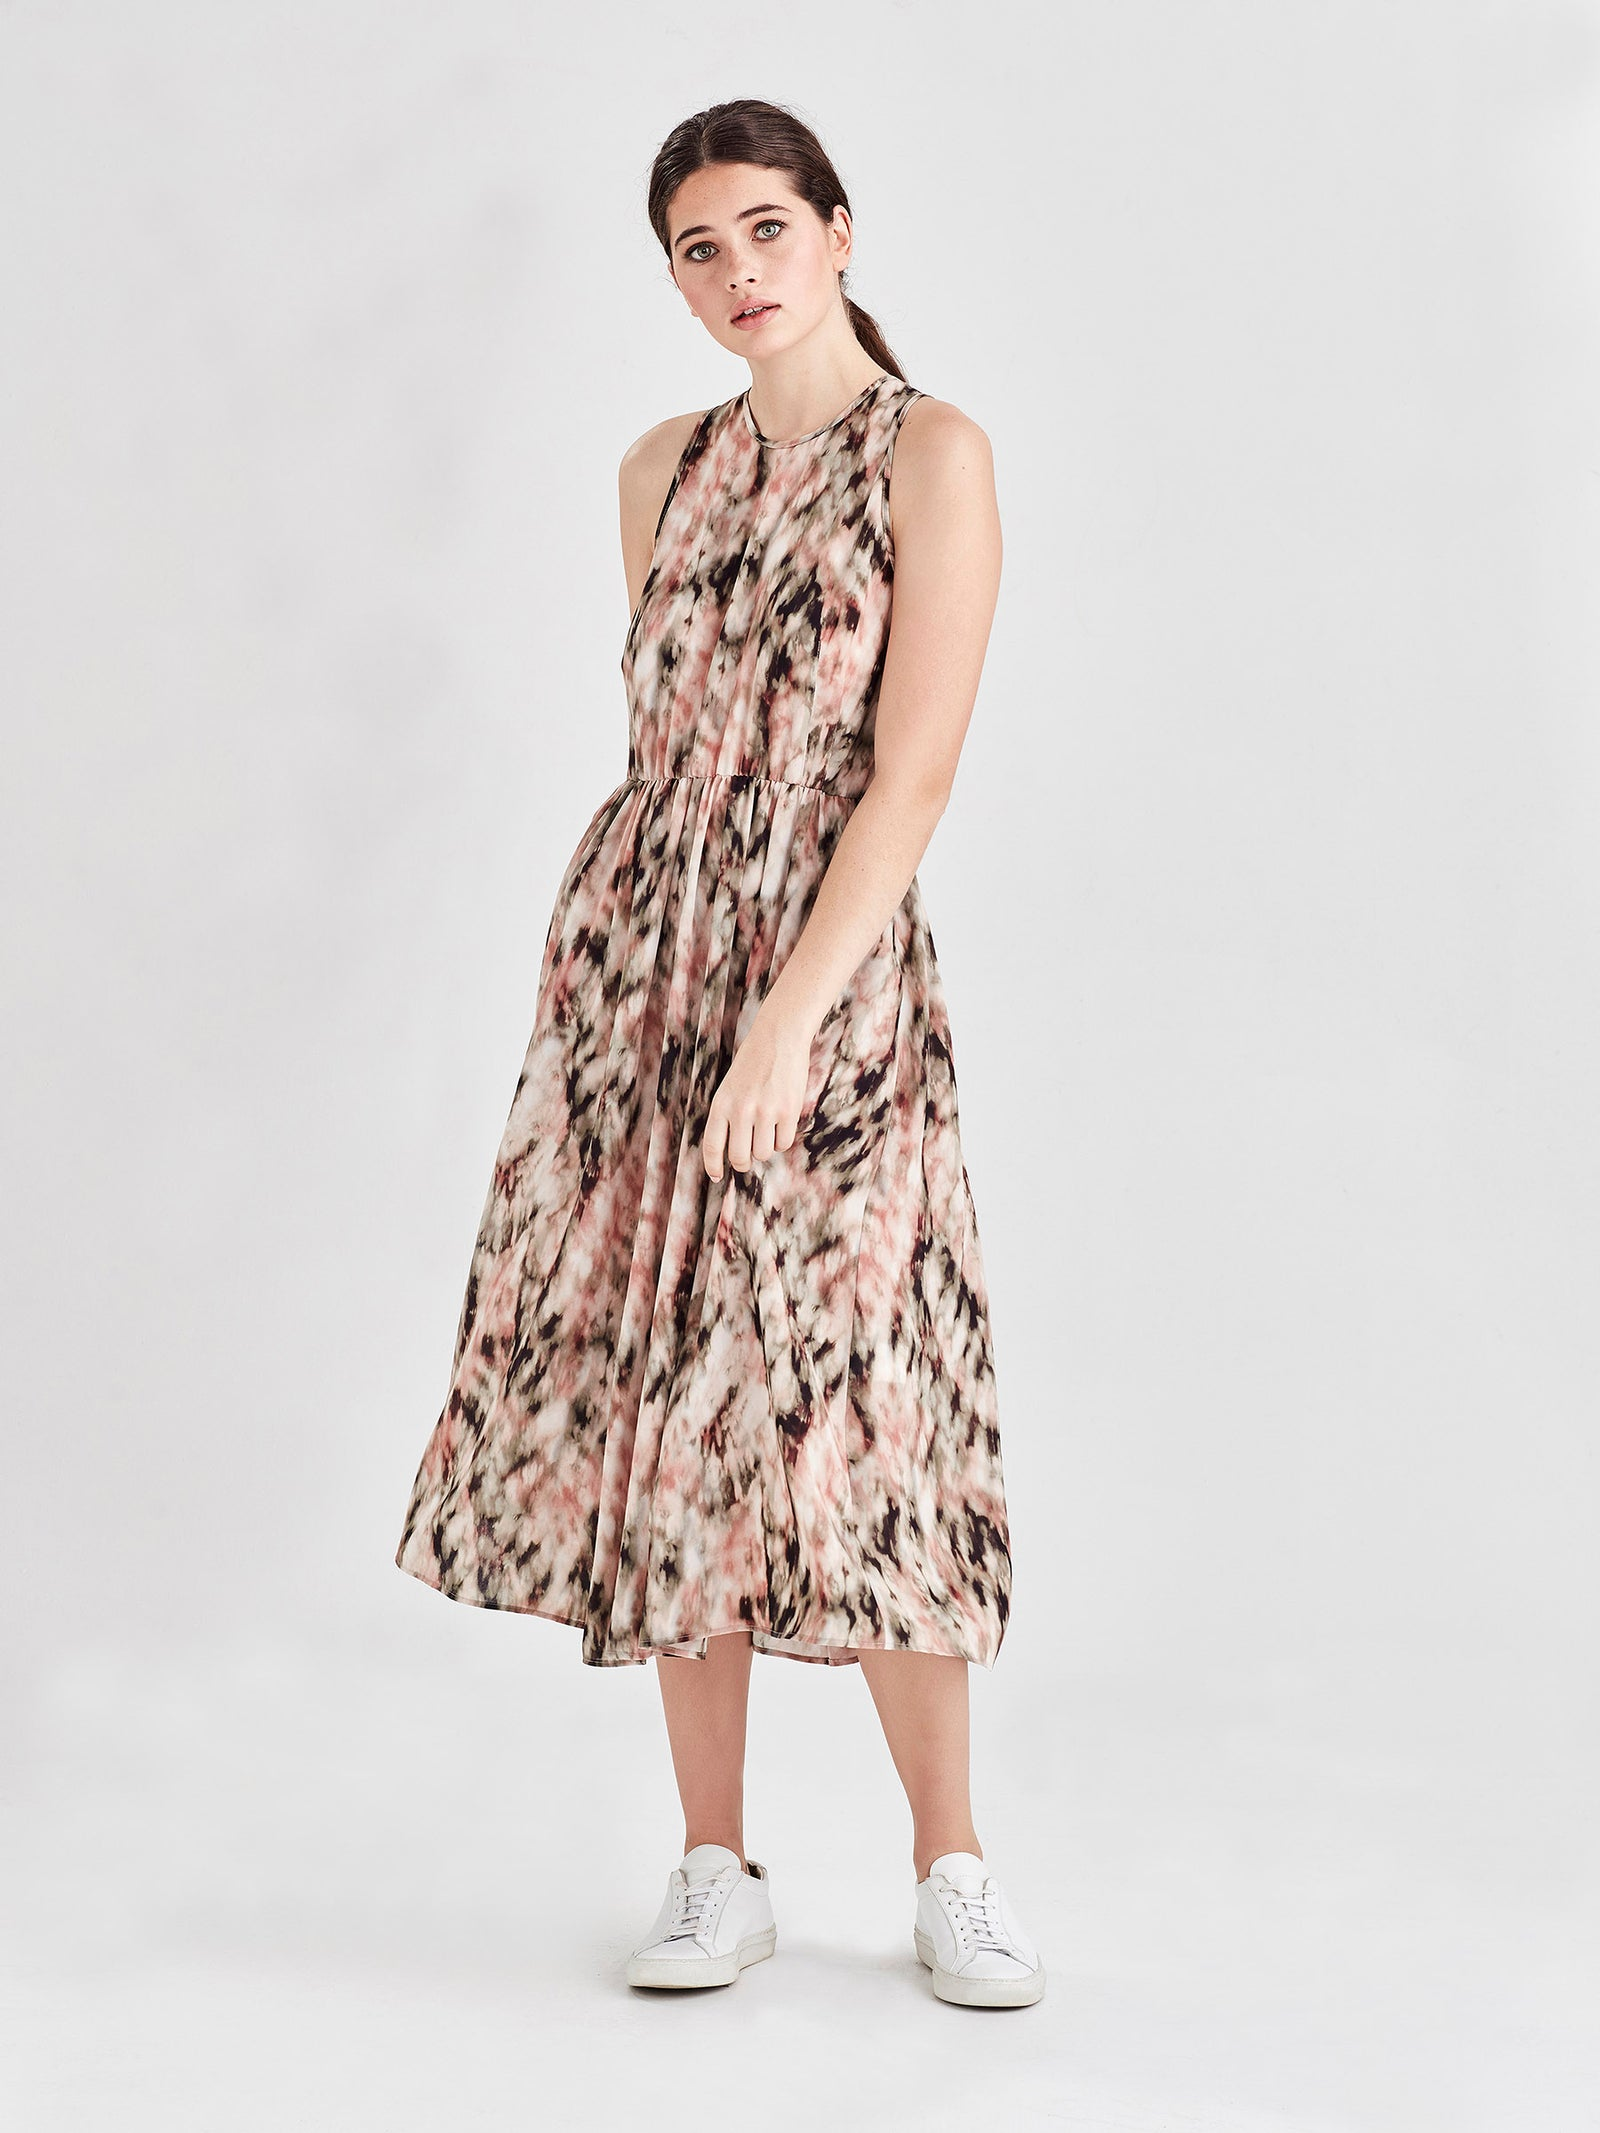 Freya Dress (Ashbury Print) Tie Dye